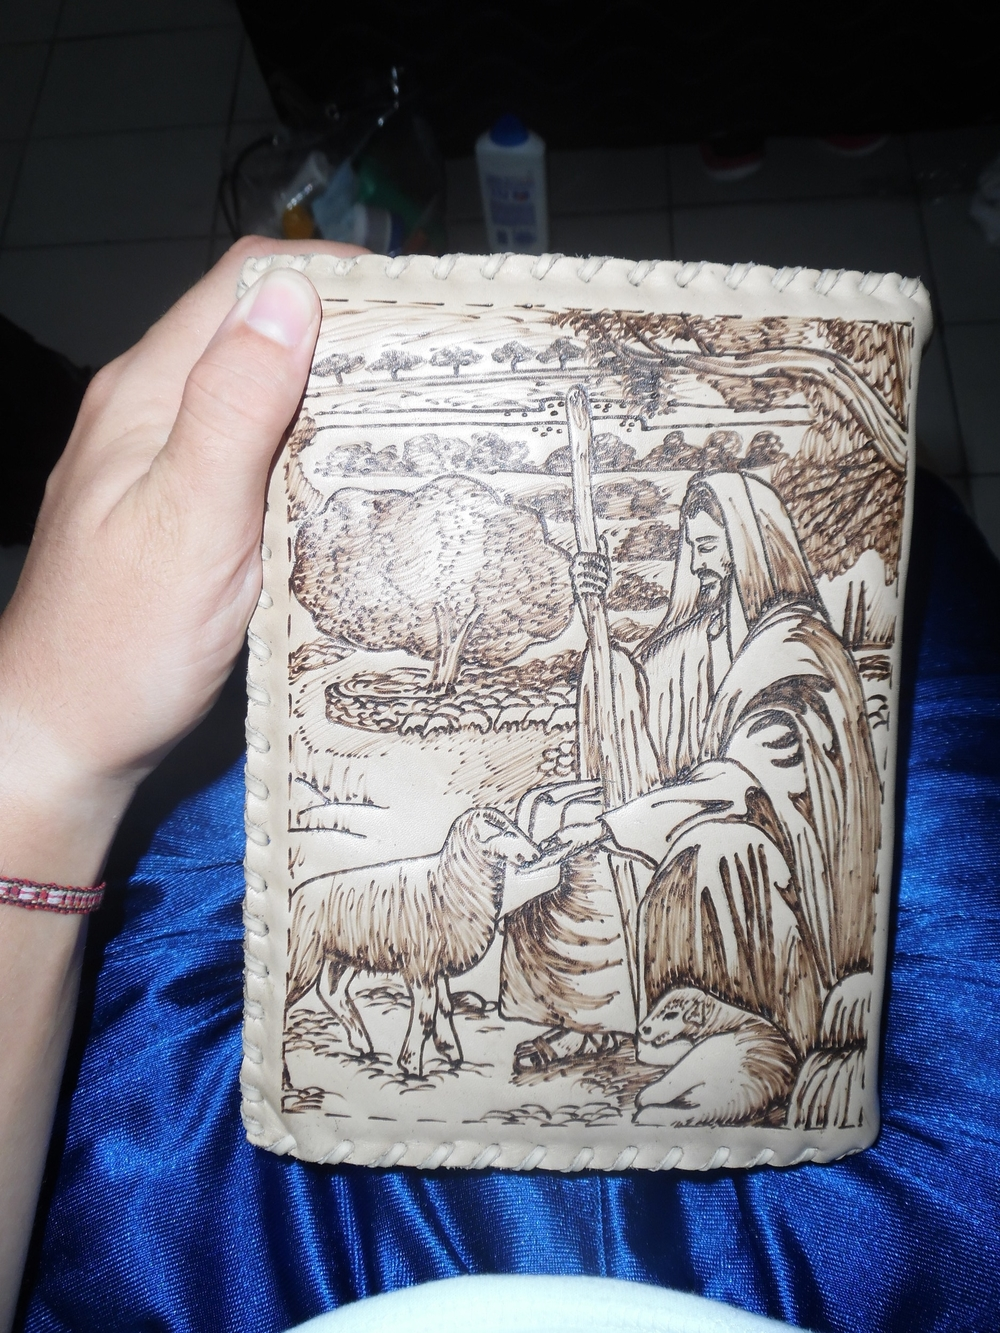 Awesome scripture case I had made in Brazil.